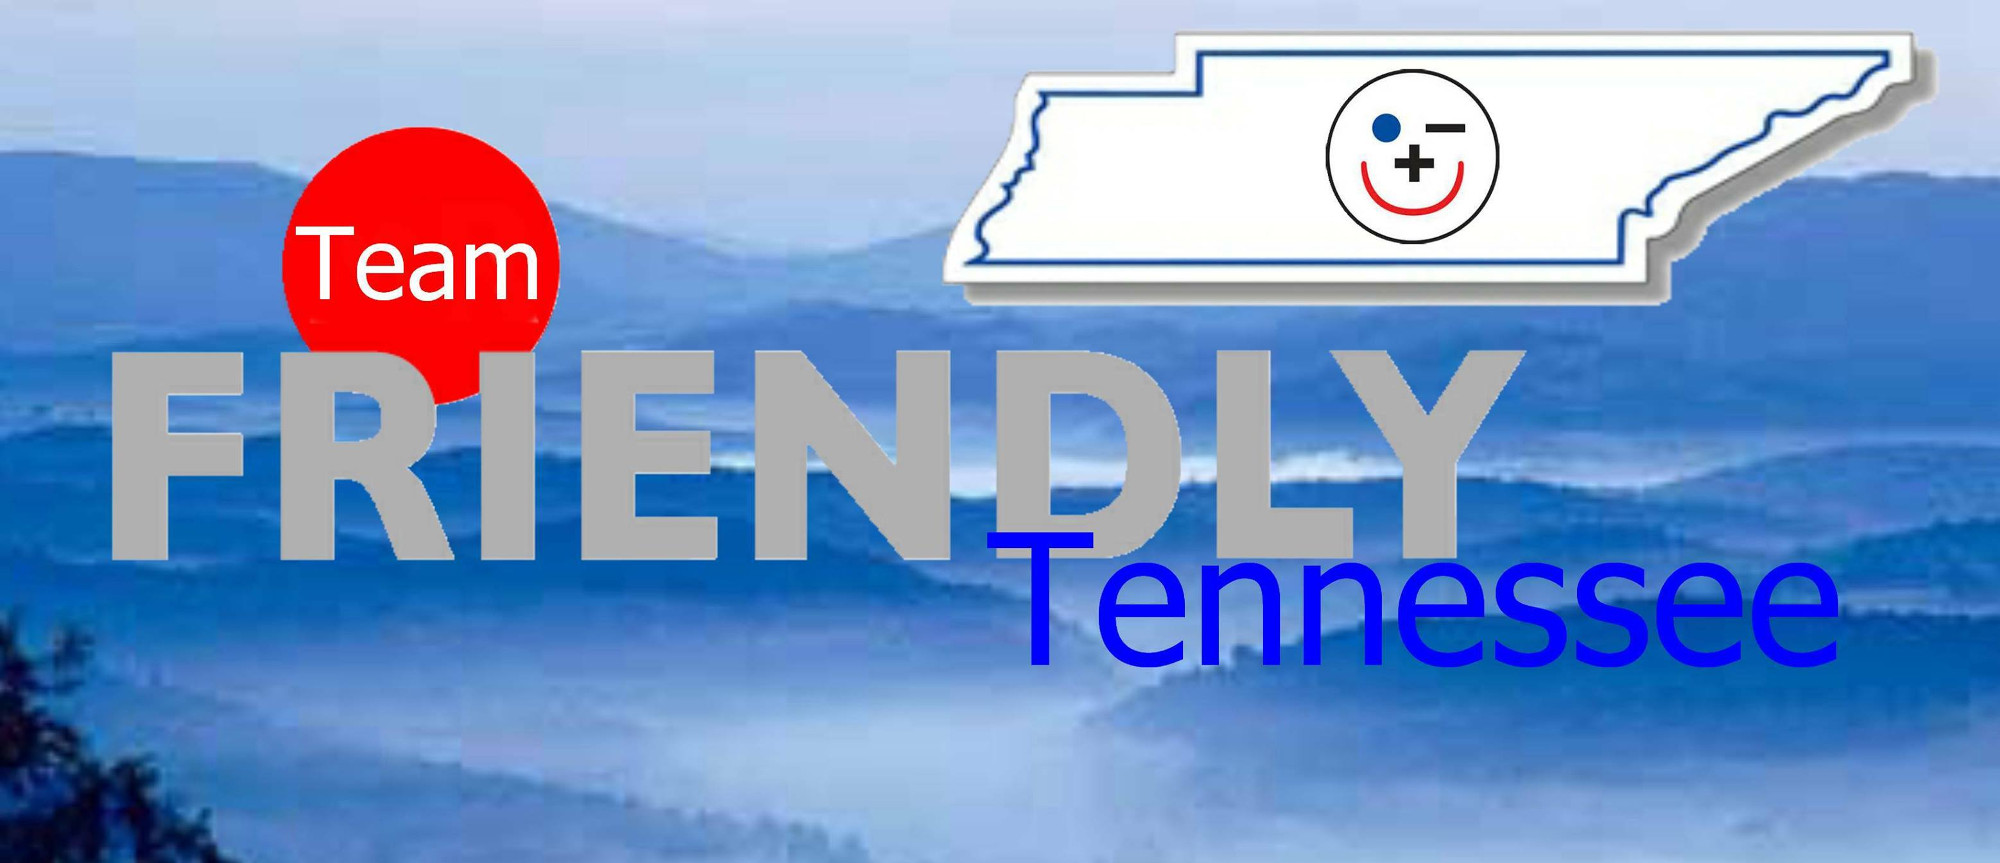 Team Friendly Tennessee